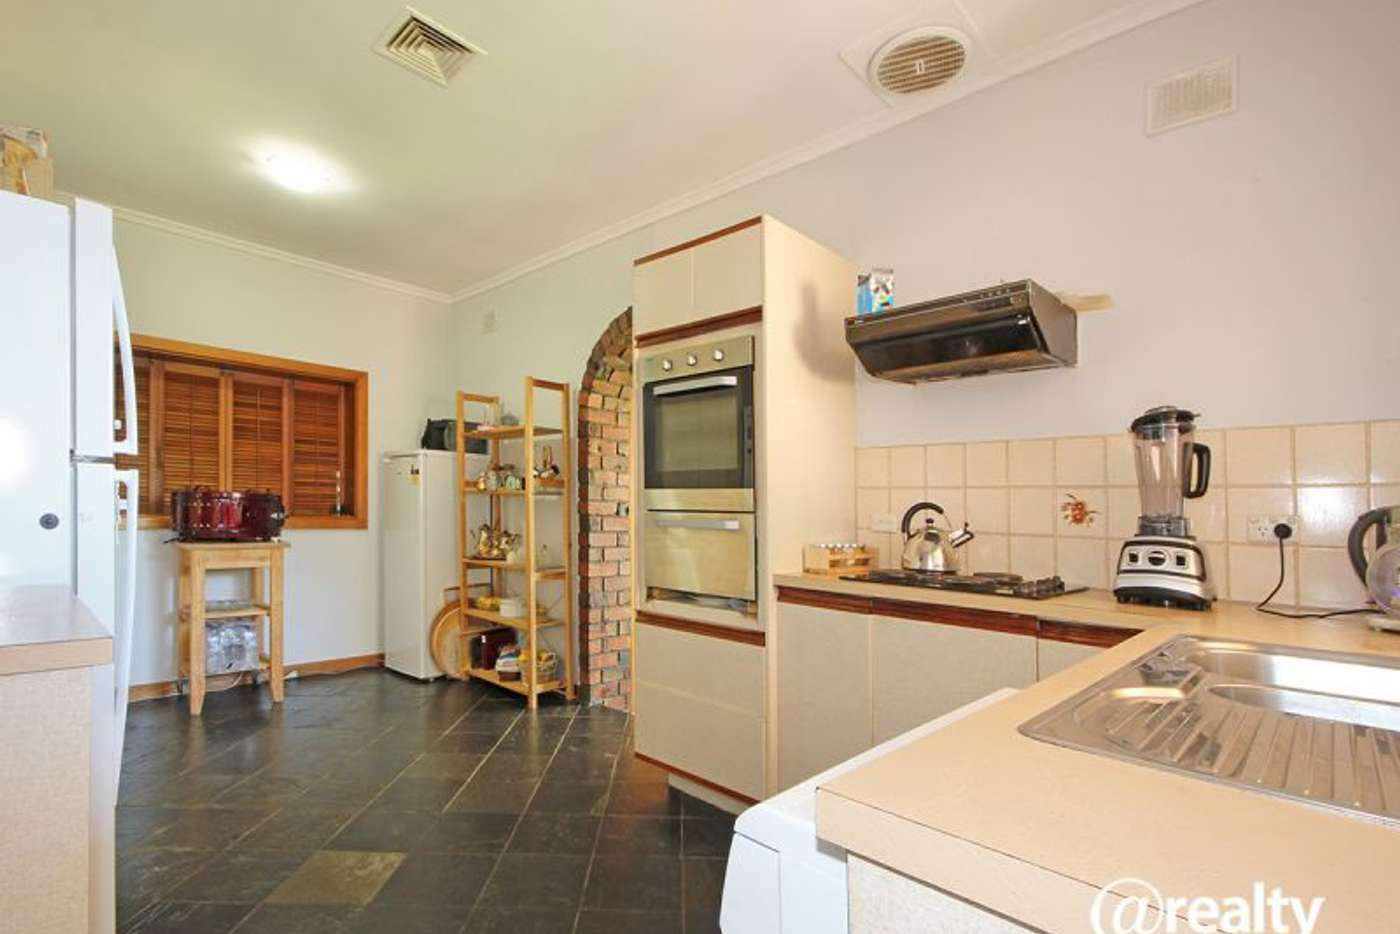 Fifth view of Homely house listing, 21 Greenfield Road, Seaview Downs SA 5049